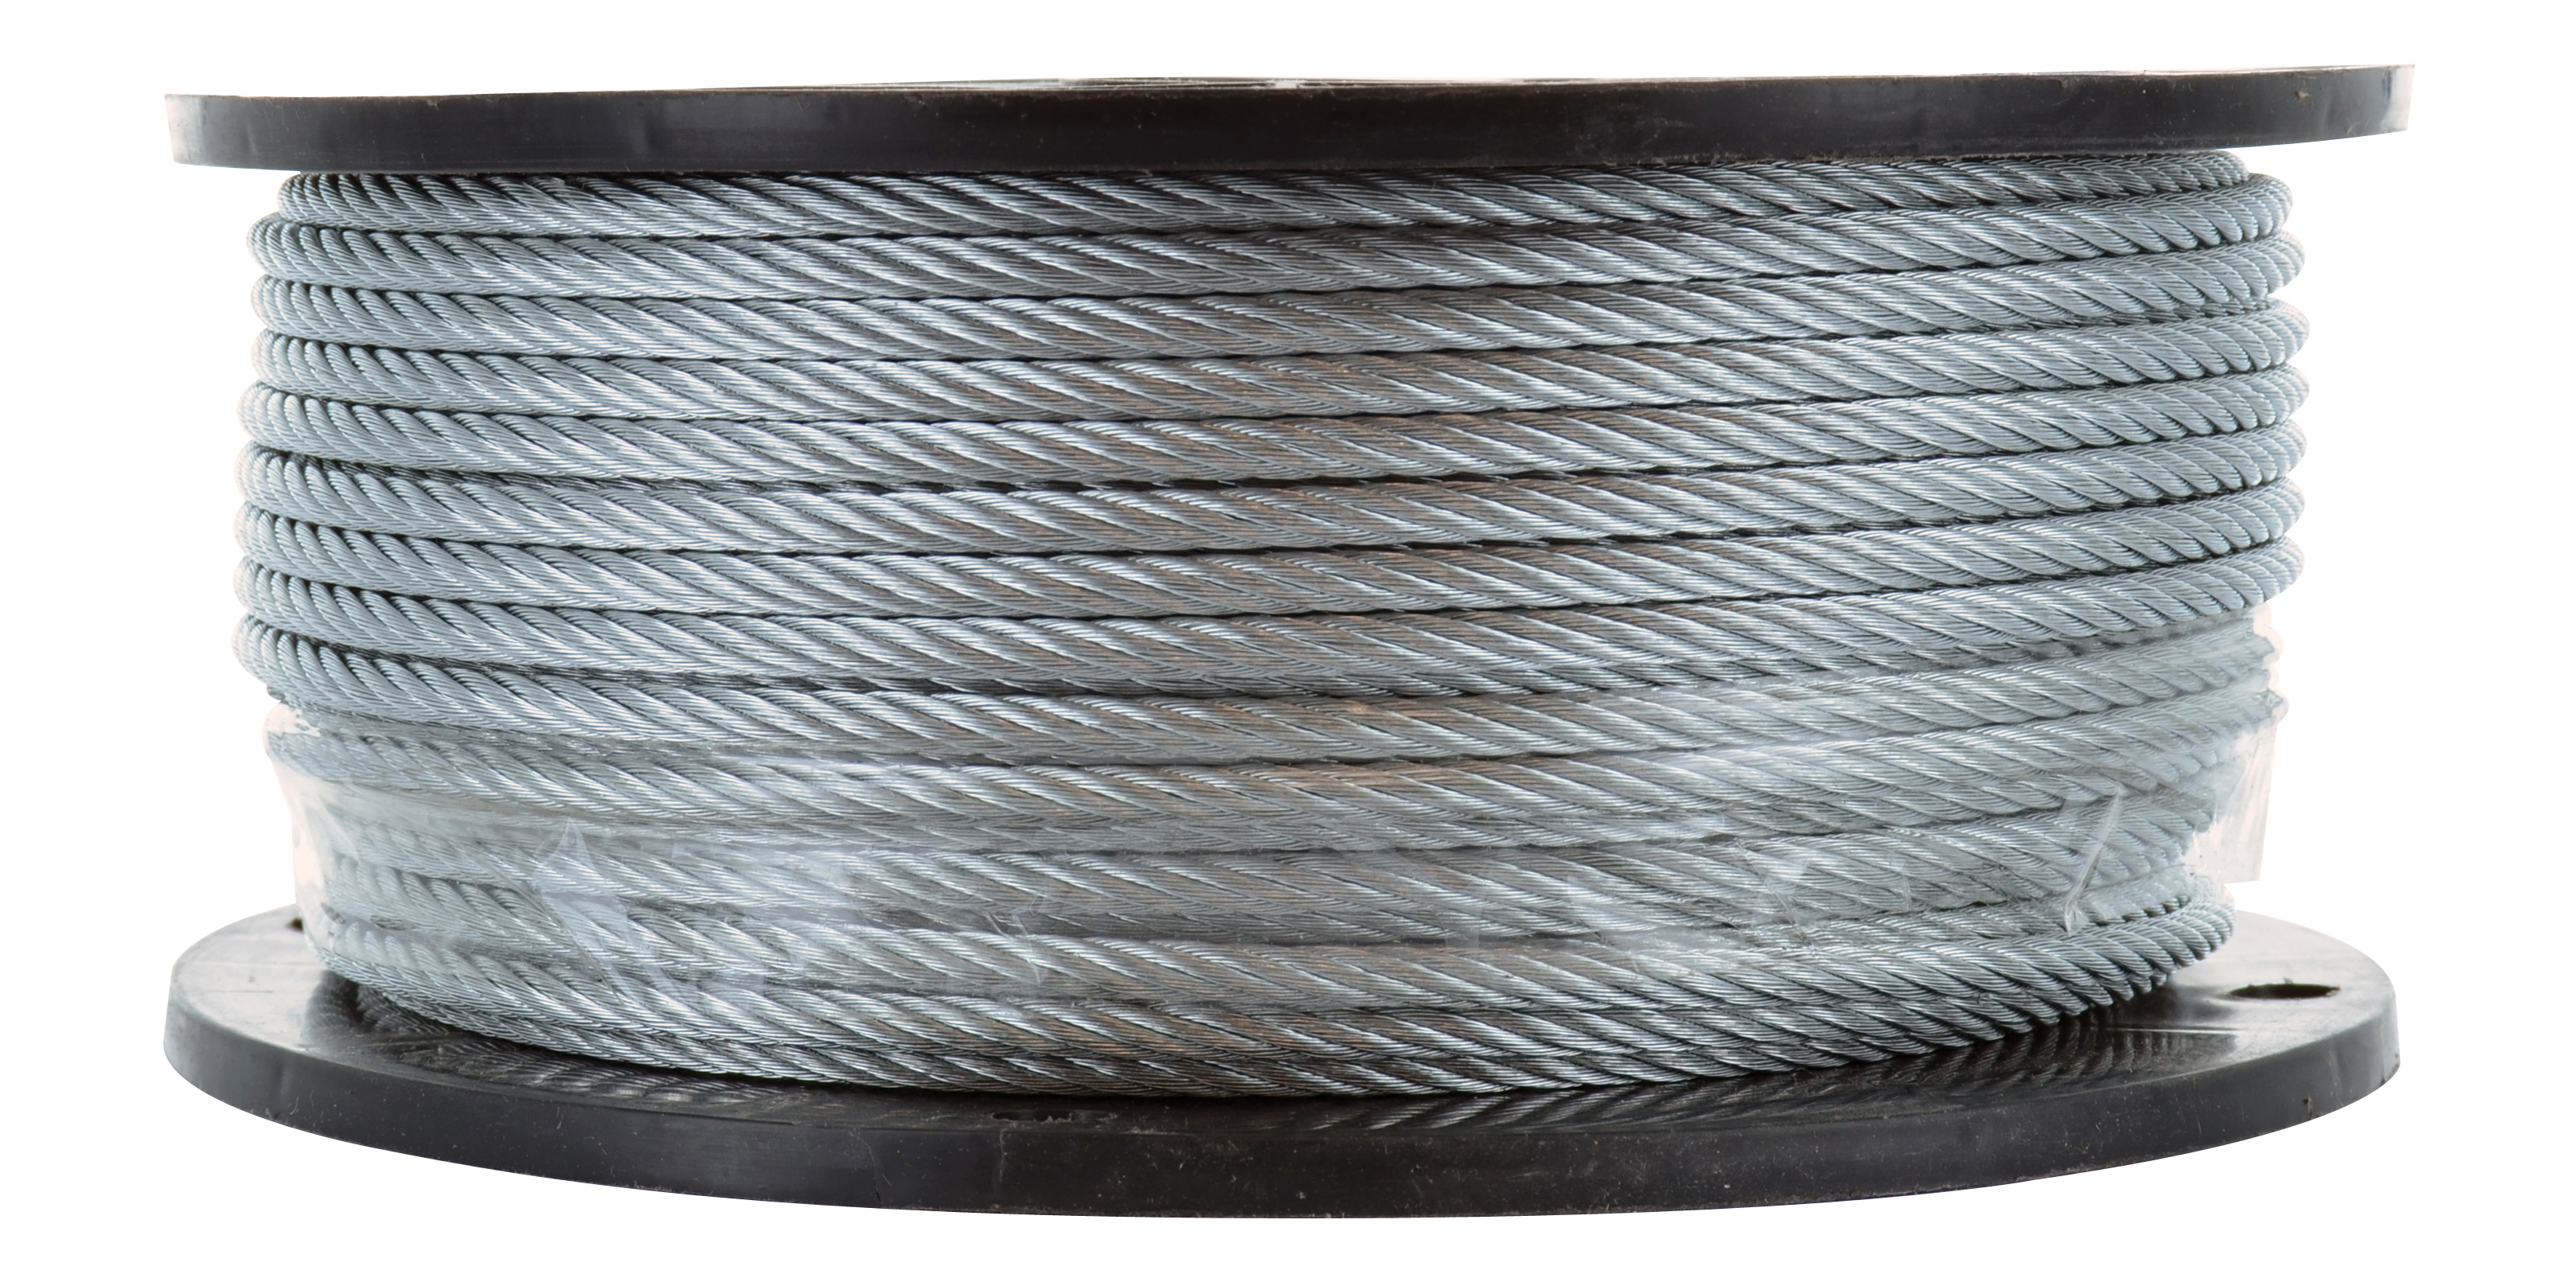 1/4 Inch x 250 ft Aircraft Cable 7 x 19 Galvanized High Carbon Steel